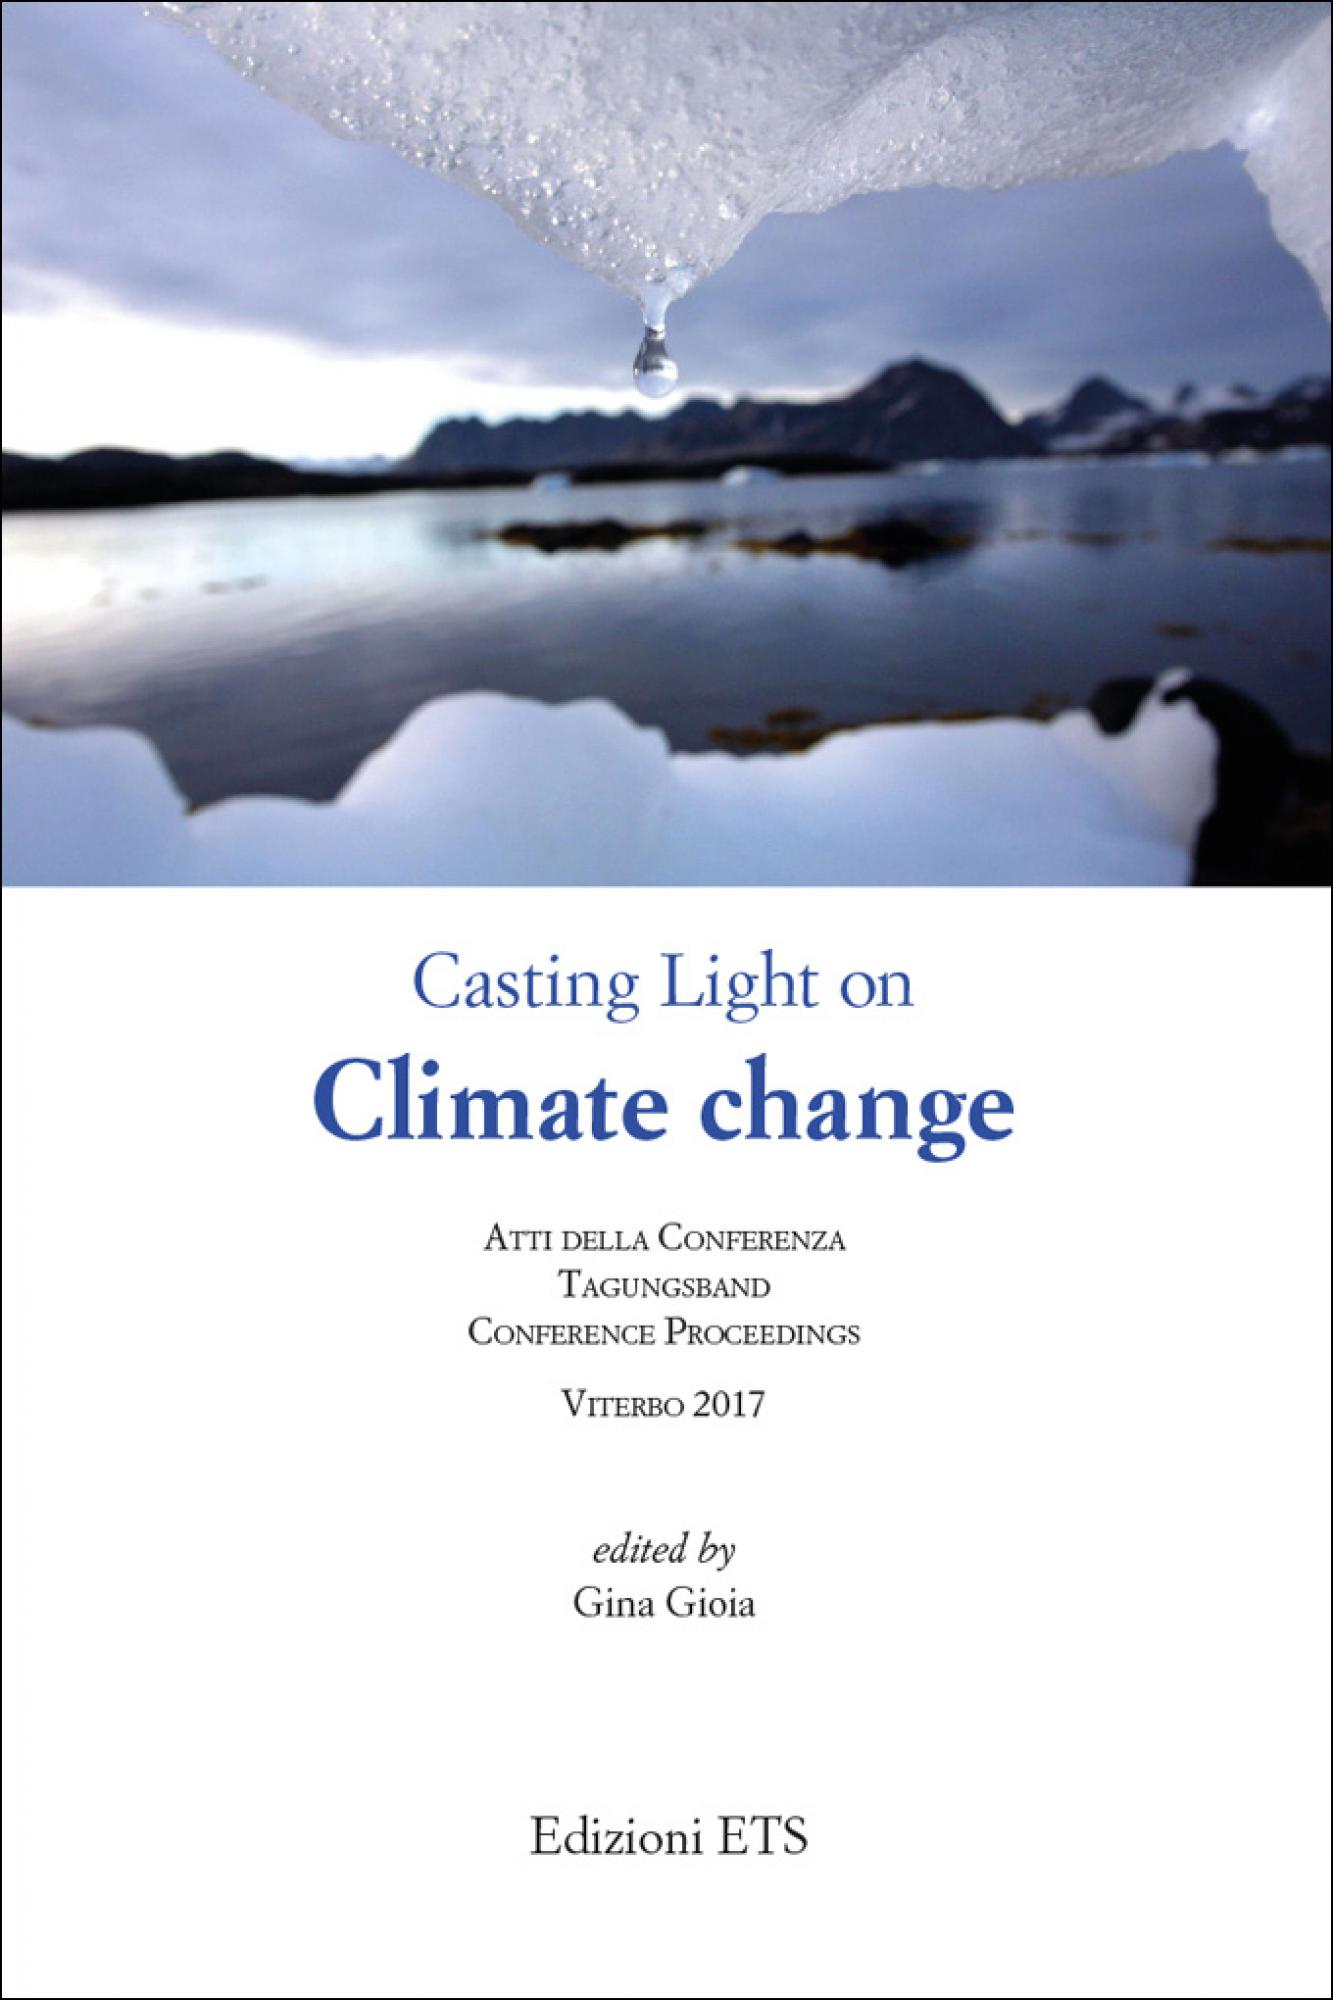 Casting Light on Climate change.